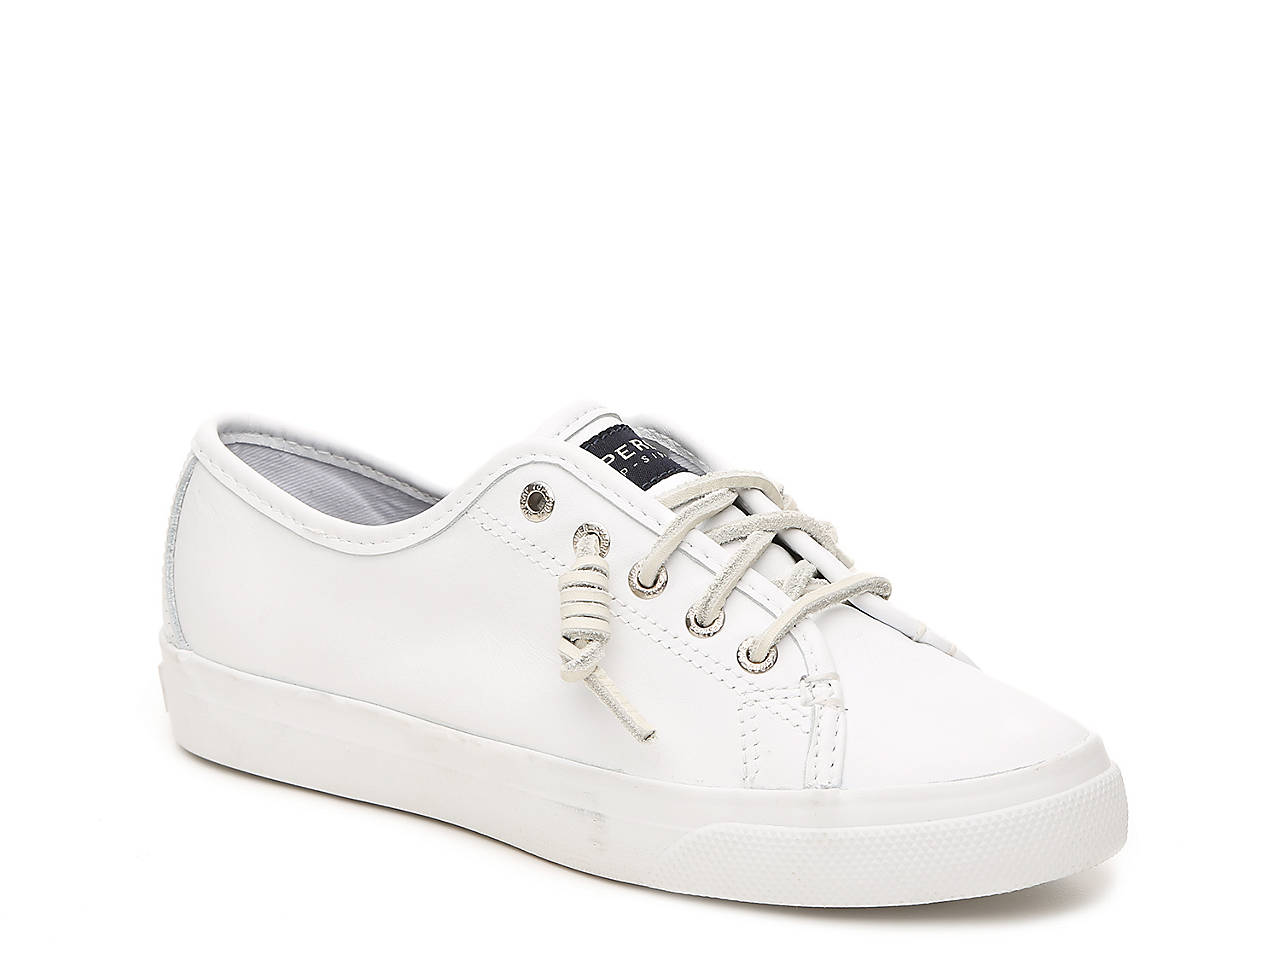 Sperry Top-Sider Pier View Leather Slip-On Sneaker Women s Shoes  ac65ec8fa